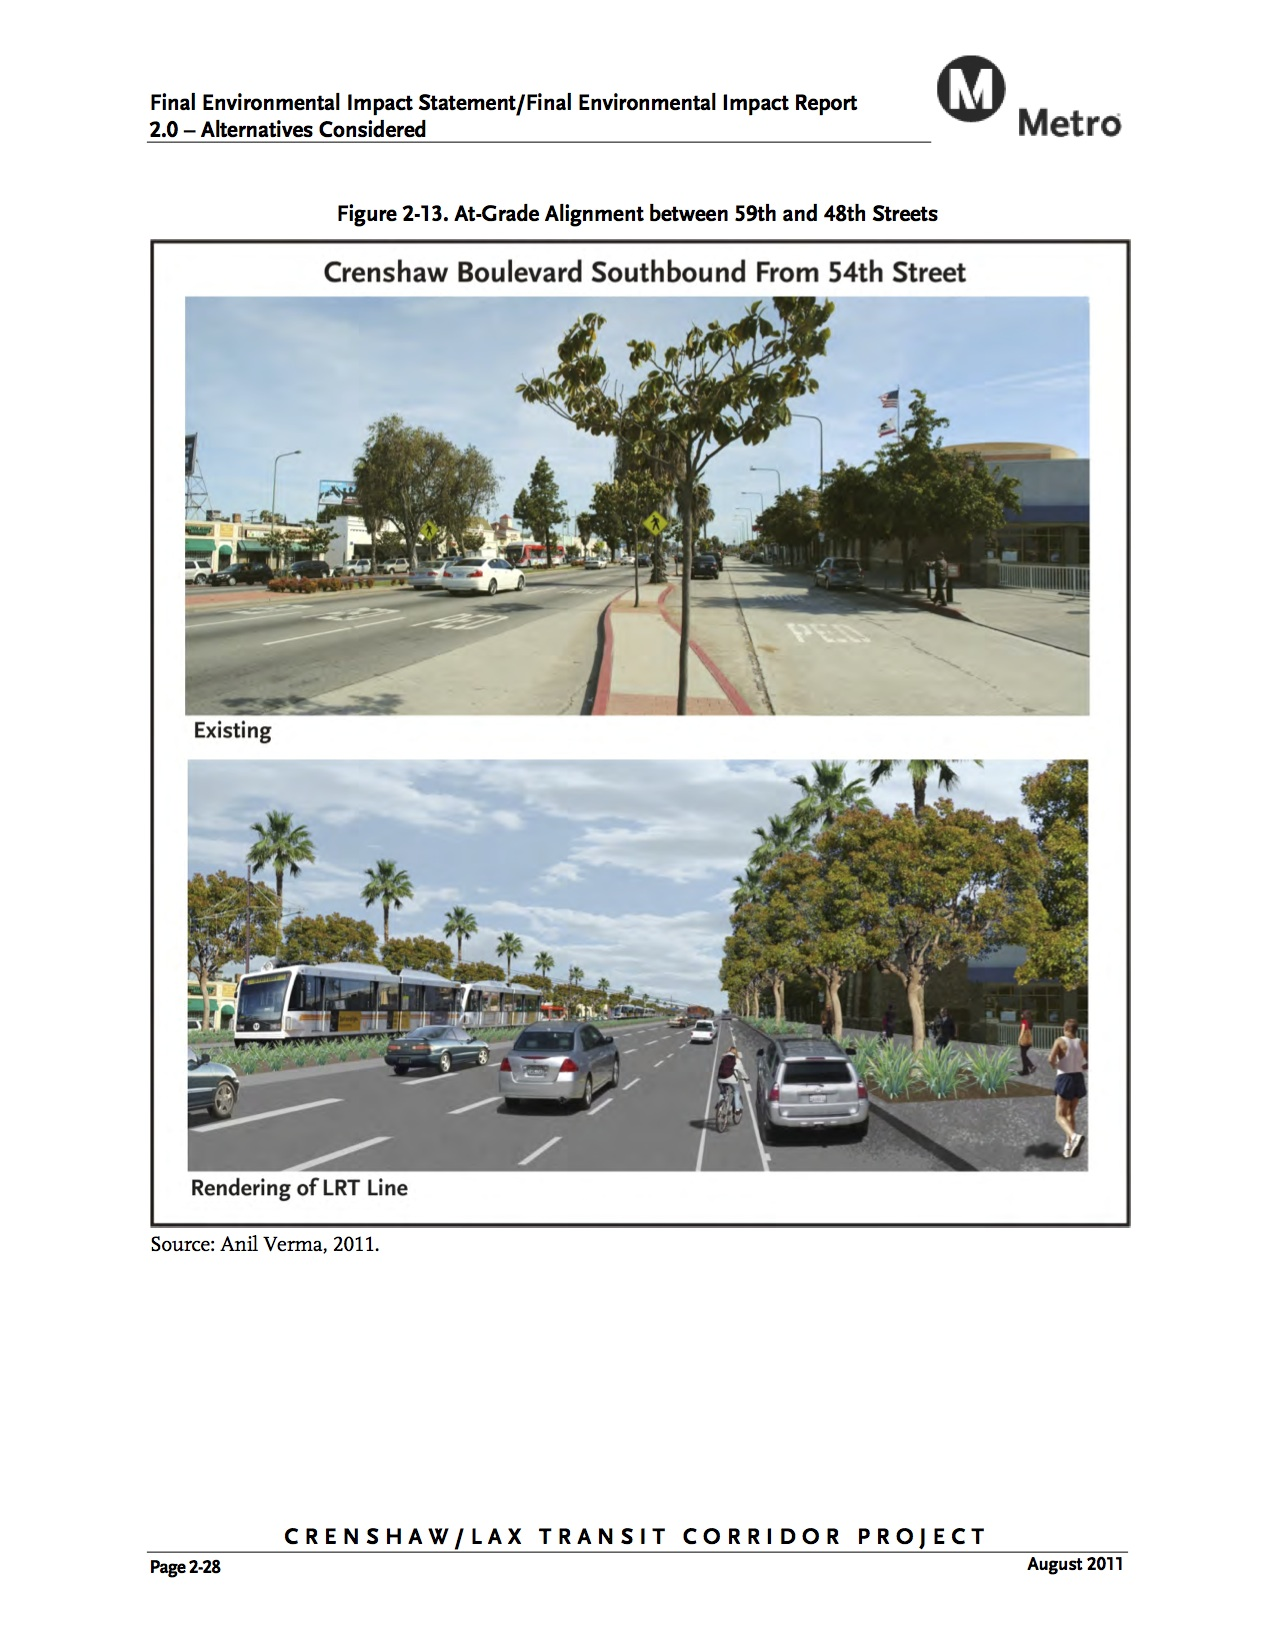 A rendering from the Crenshaw/LAX Line's final environmental document showing the light rail running at grade between 48th and 59th.